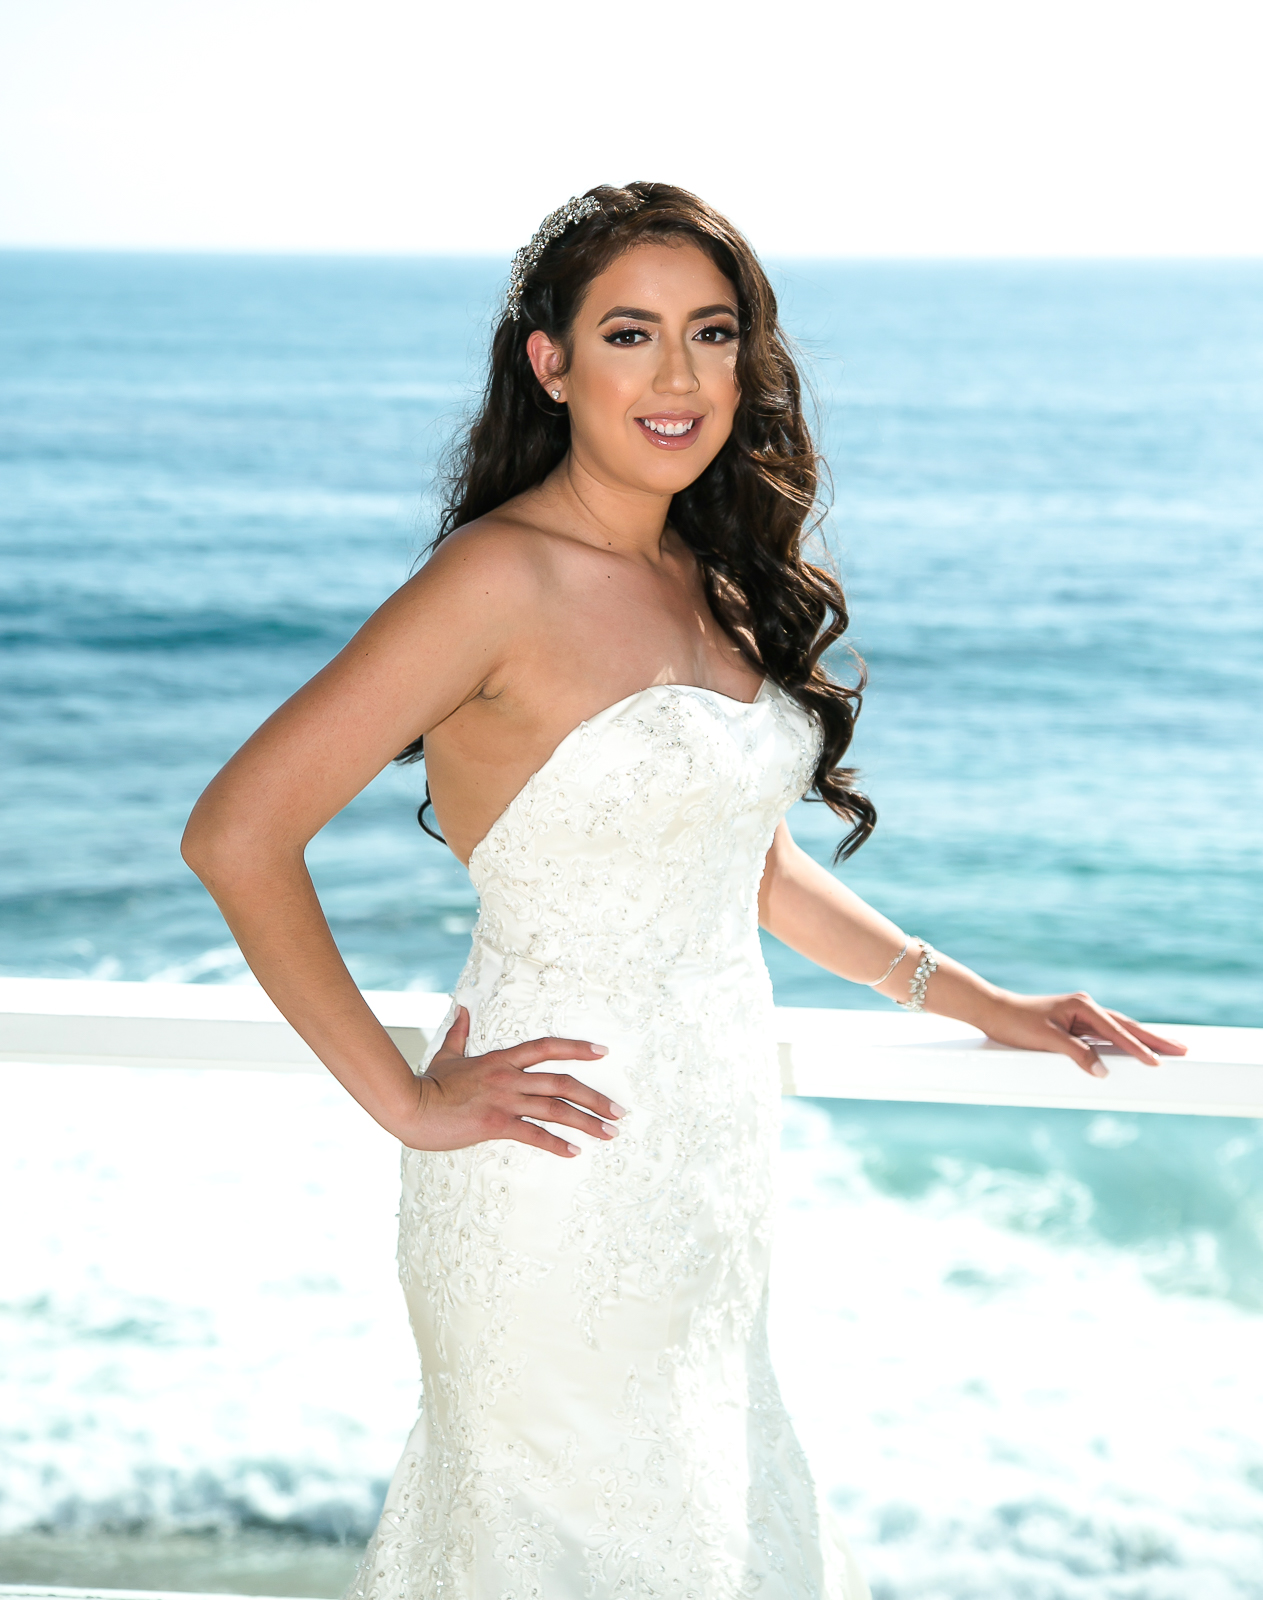 Laguna Beach Wedding, Tivoli Too Wedding, Oleg Cassini Wedding Dress, Oleg Cassini Ivory Dress, Ivory Wedding Dress, Davids Bridal Wedding Dress, Beach Wedding, Blue By Betsey Johnson Heels, Blue by betsey Johnson Updo Sandal, Bow heels, Strapless Wedding Dress